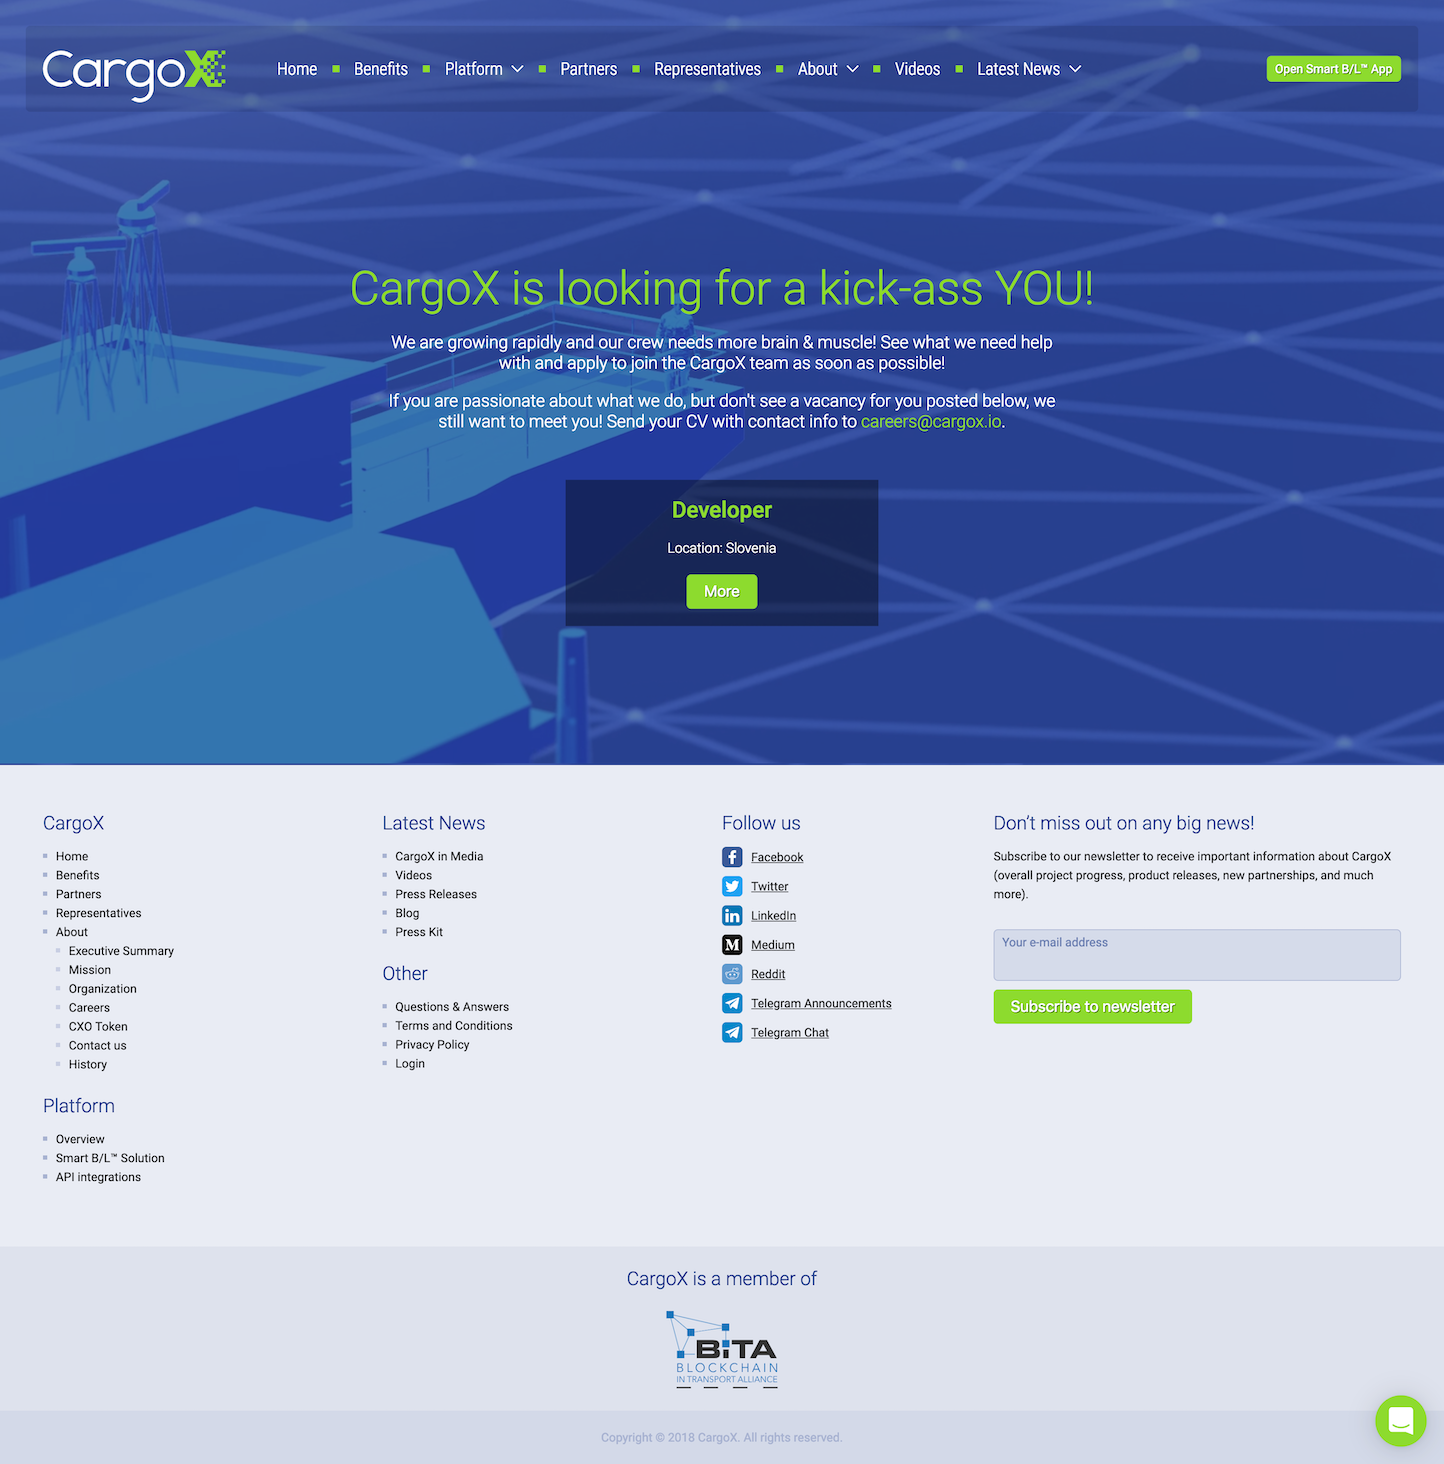 Screenshot of the Careers page from the CargoX website.